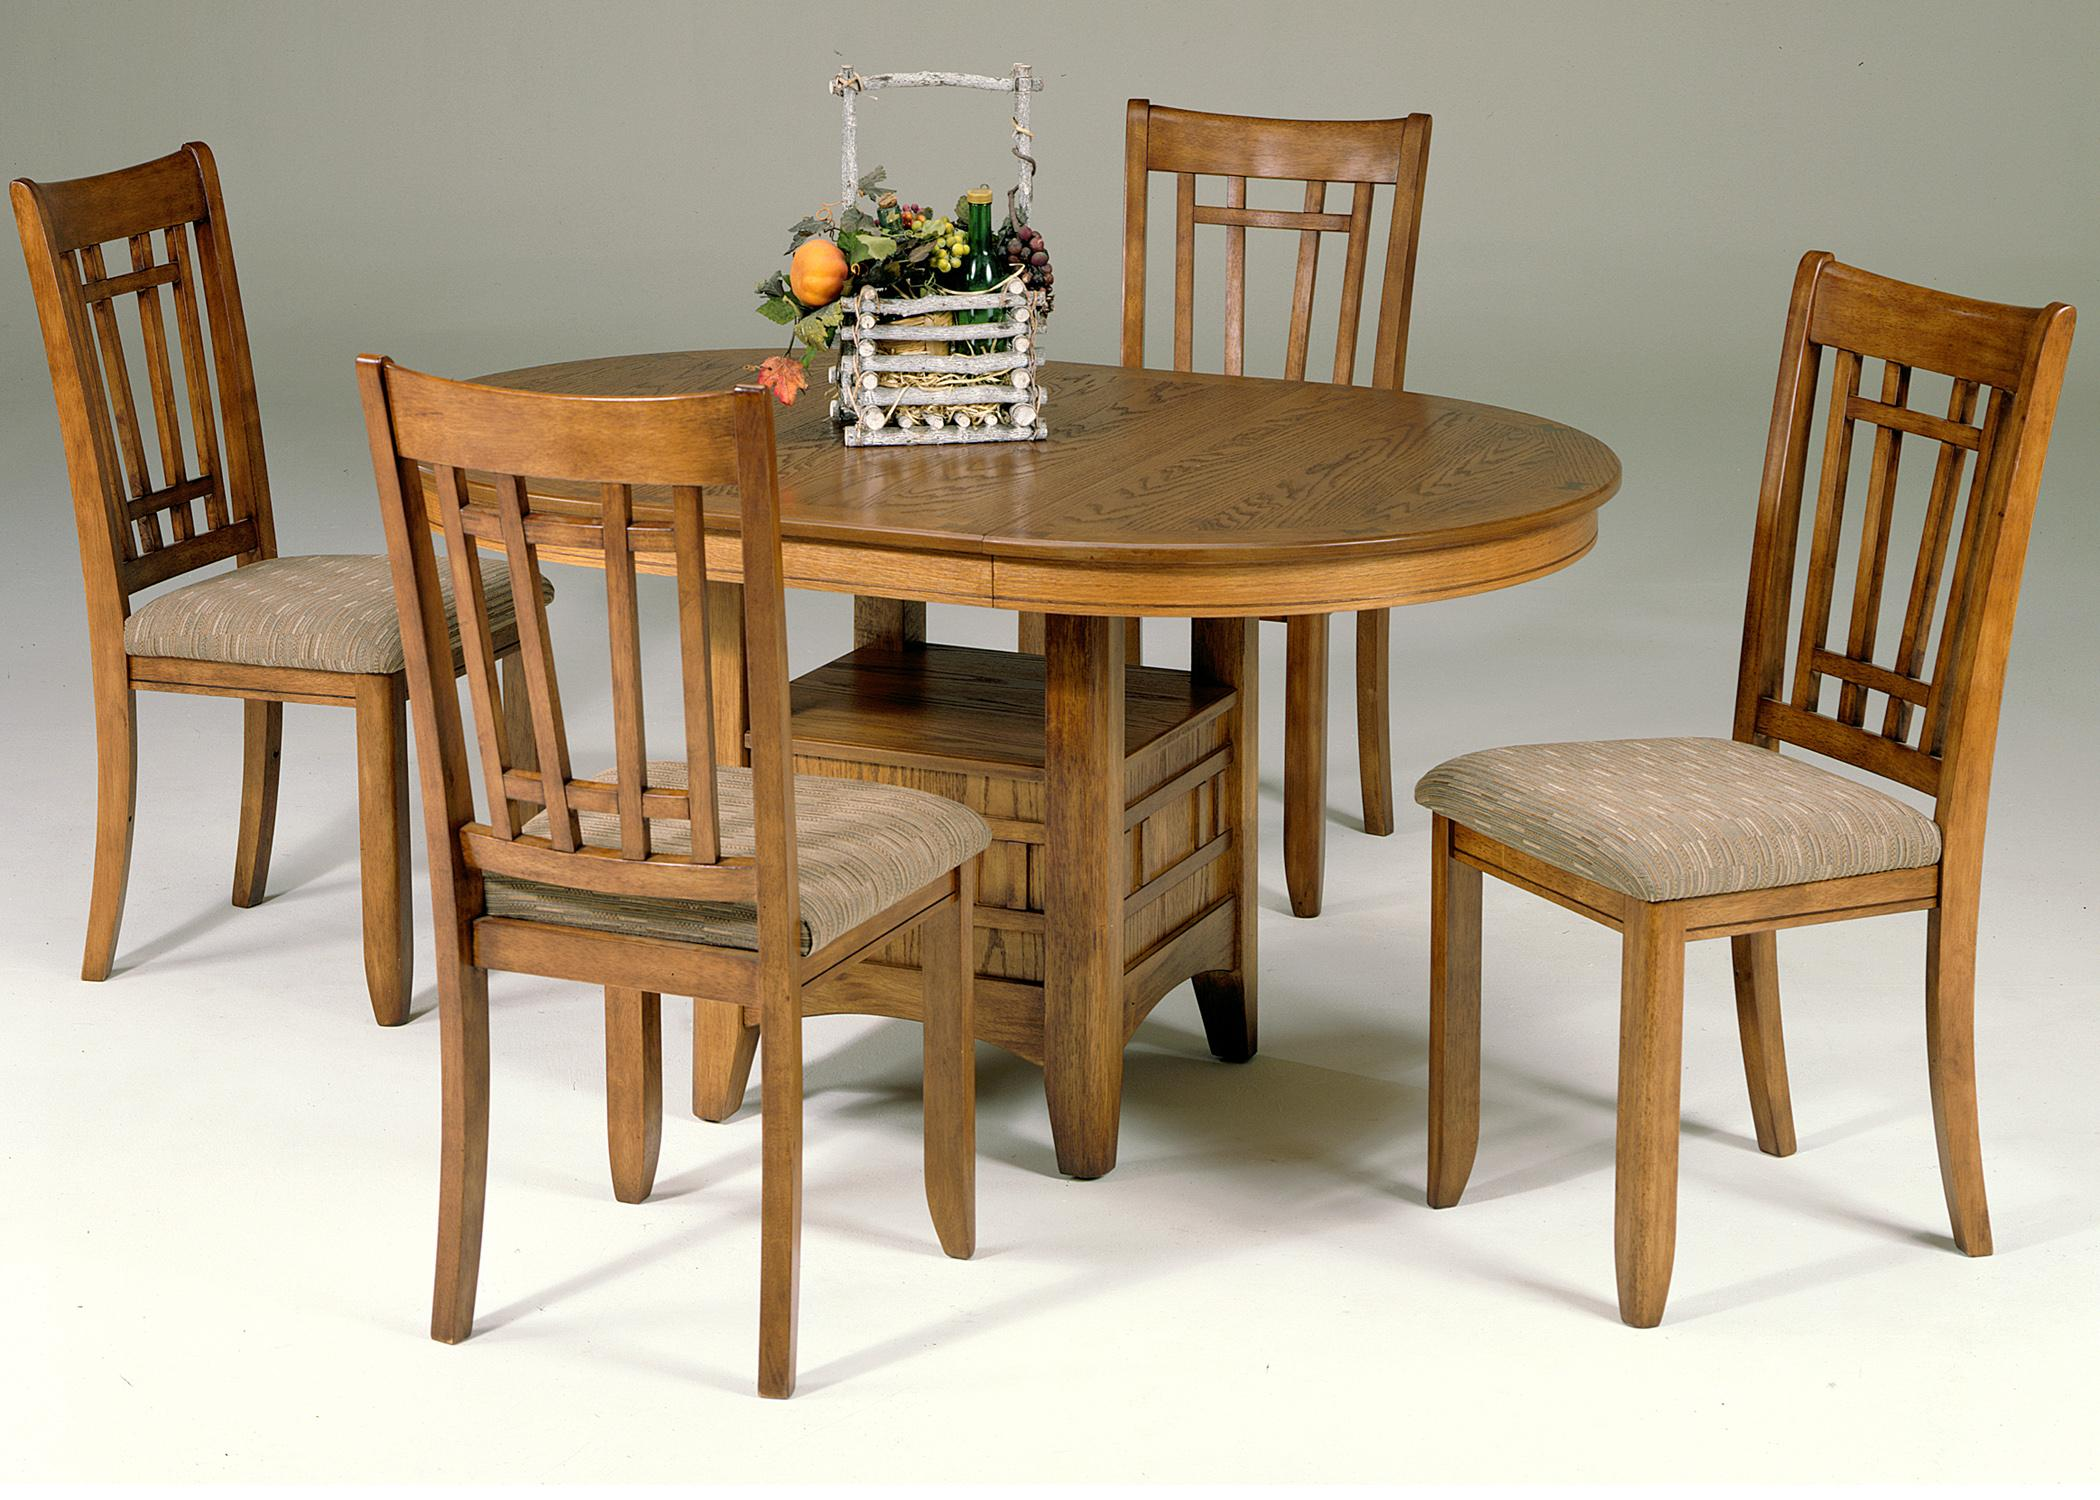 Oval pedestal table with storage base by liberty furniture wolf and gardiner wolf furniture - Pedestal kitchen table set ...